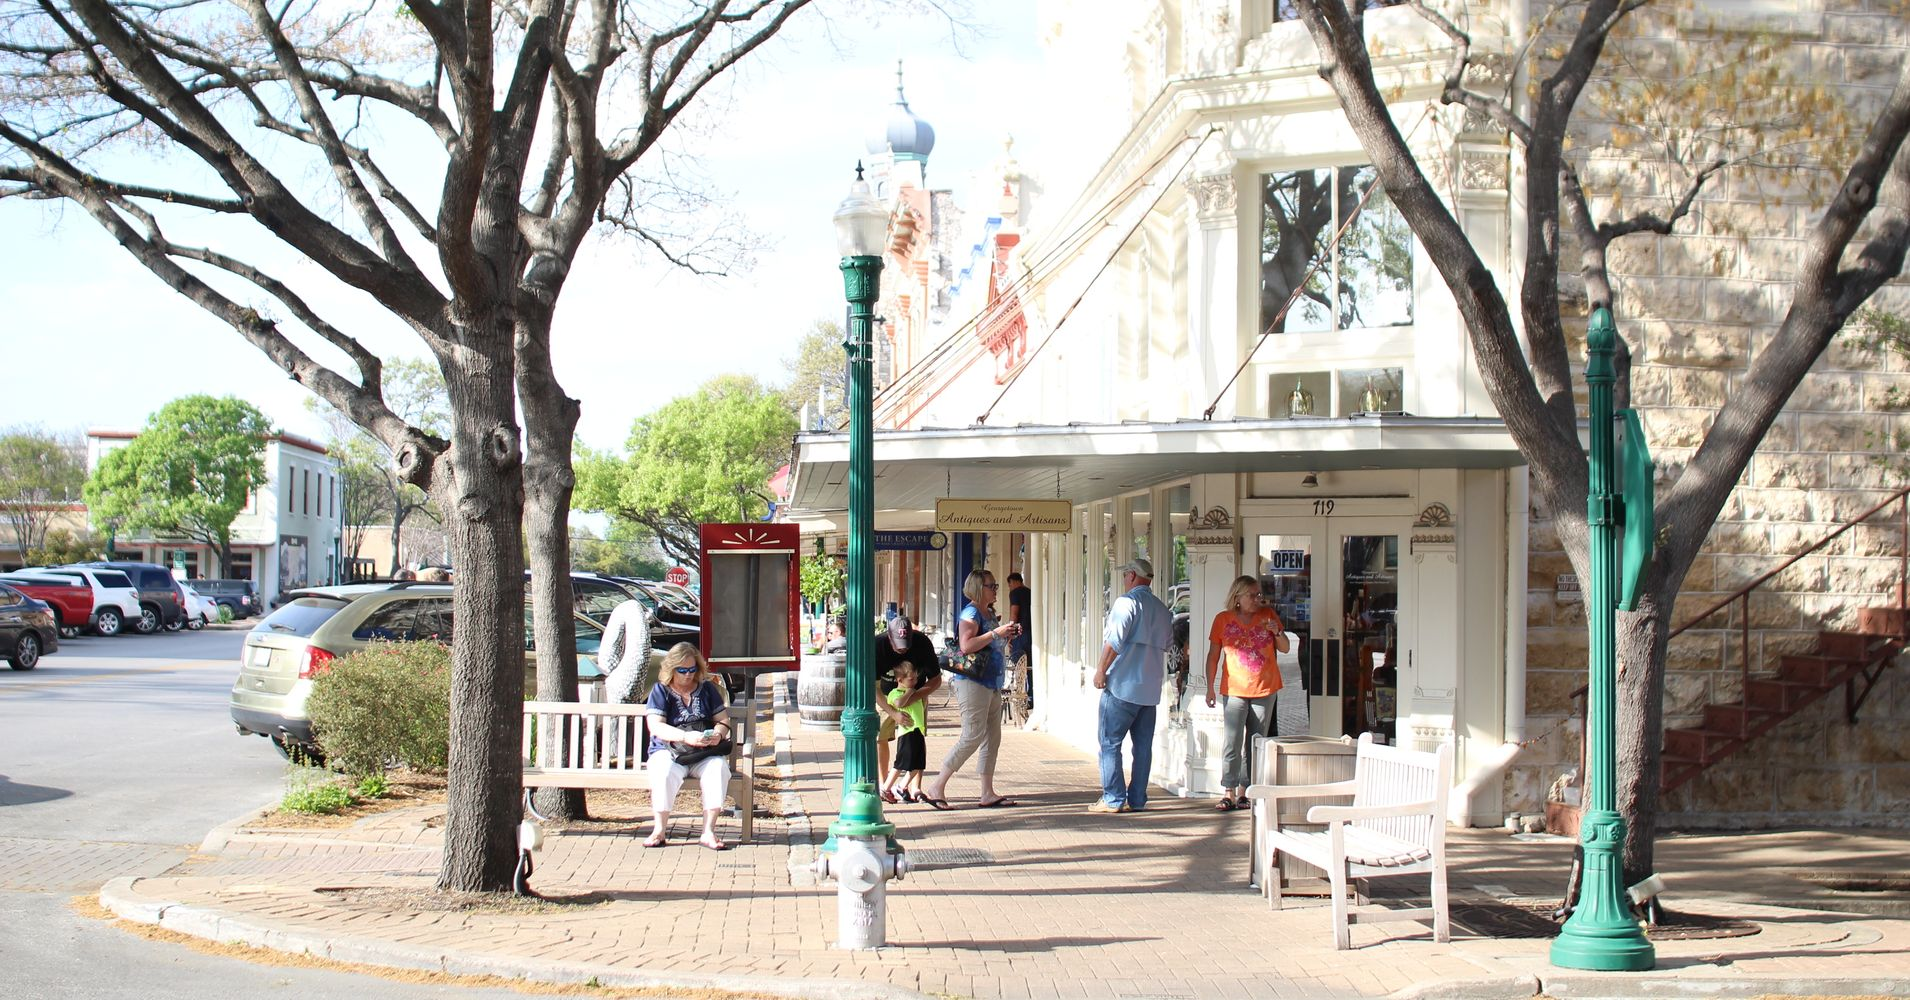 This Small Town In Texas Is Packed With History And Charm